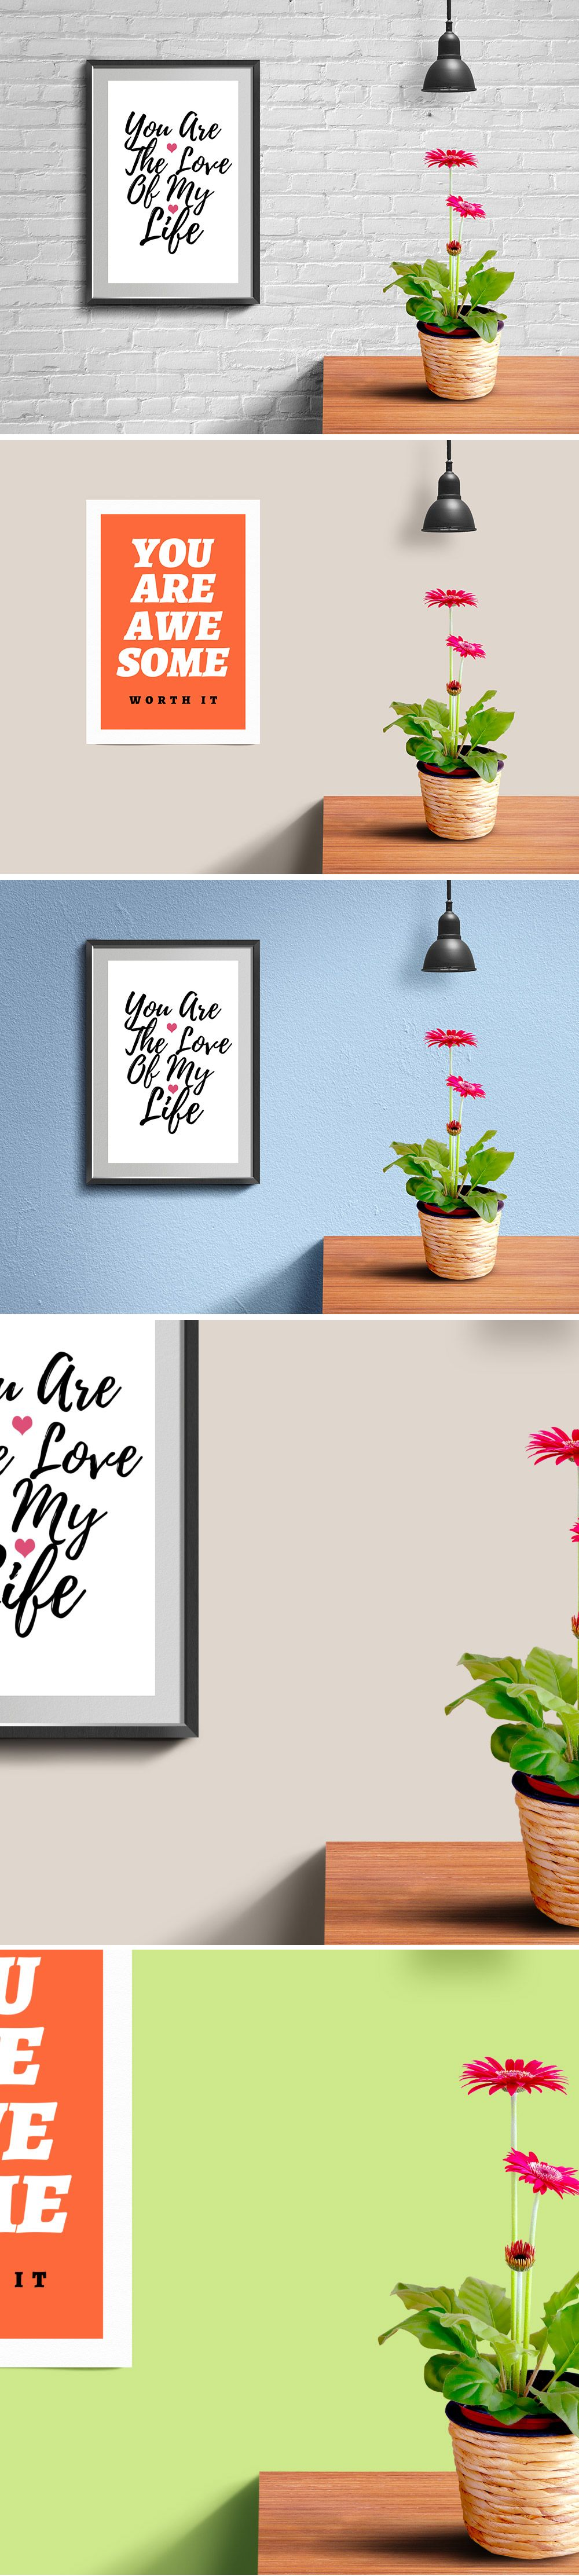 Wall Frame And Poster Mockup Psd Showcase Your Photos Or Creative